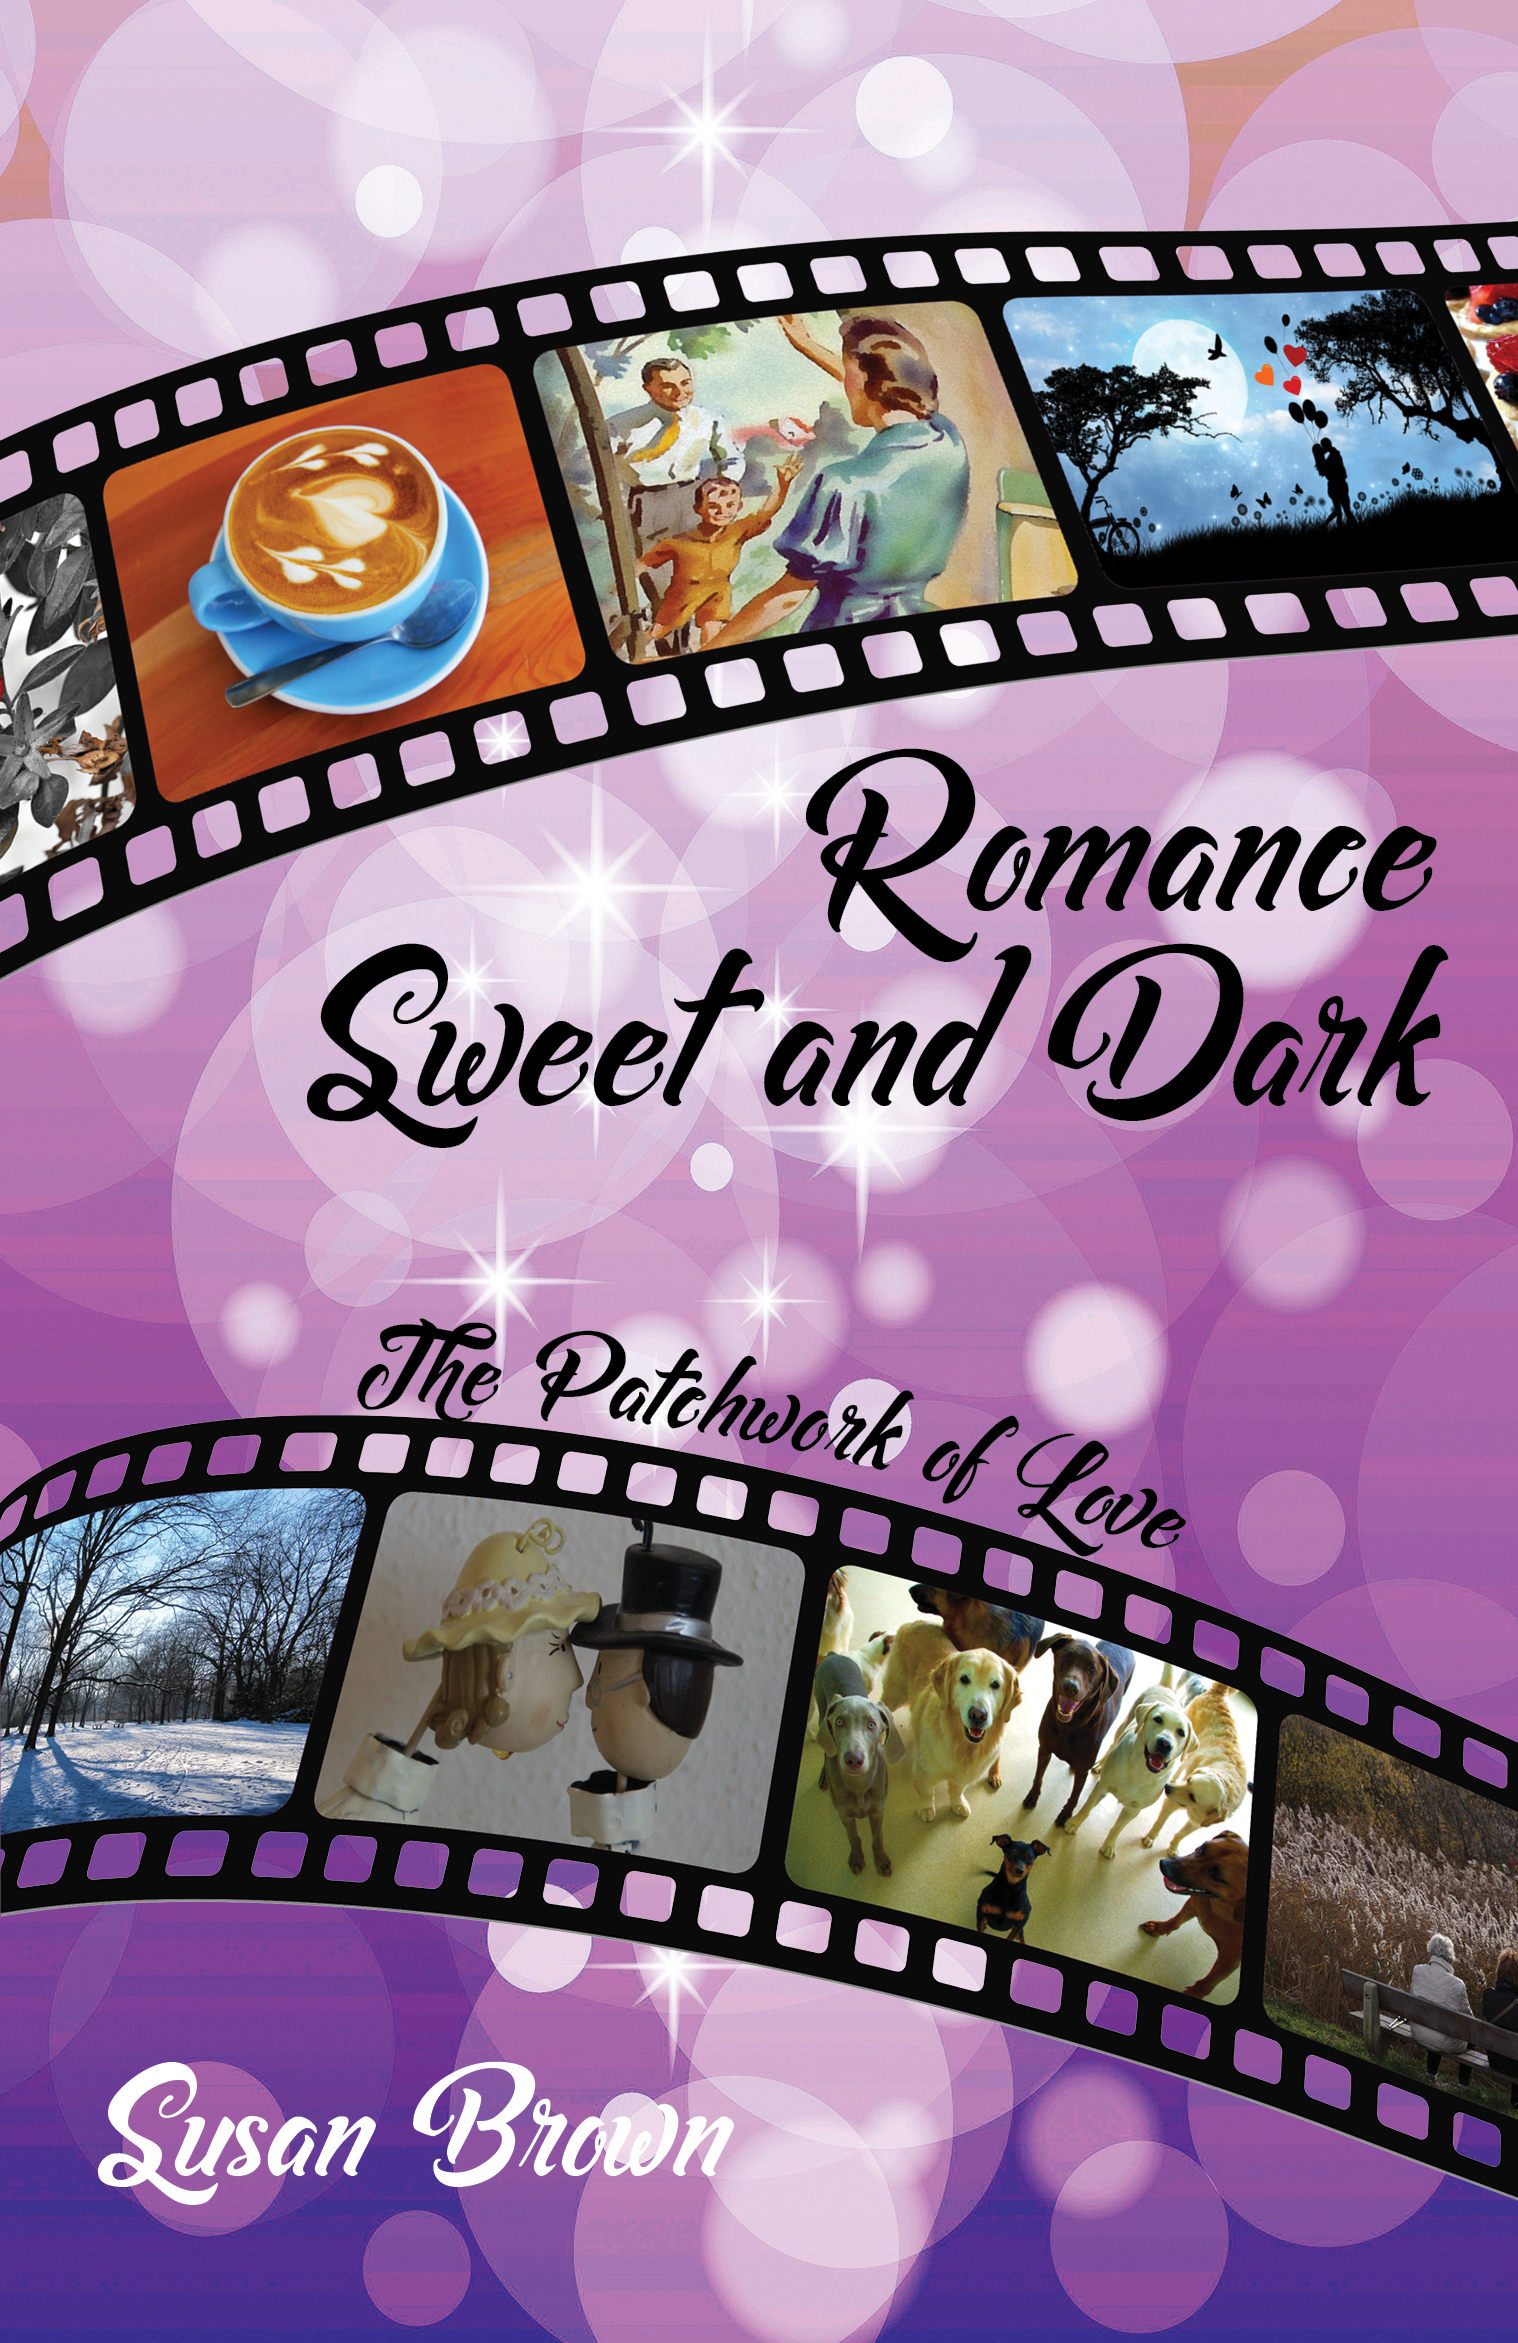 Romance Sweet and Dark by Susan Brown